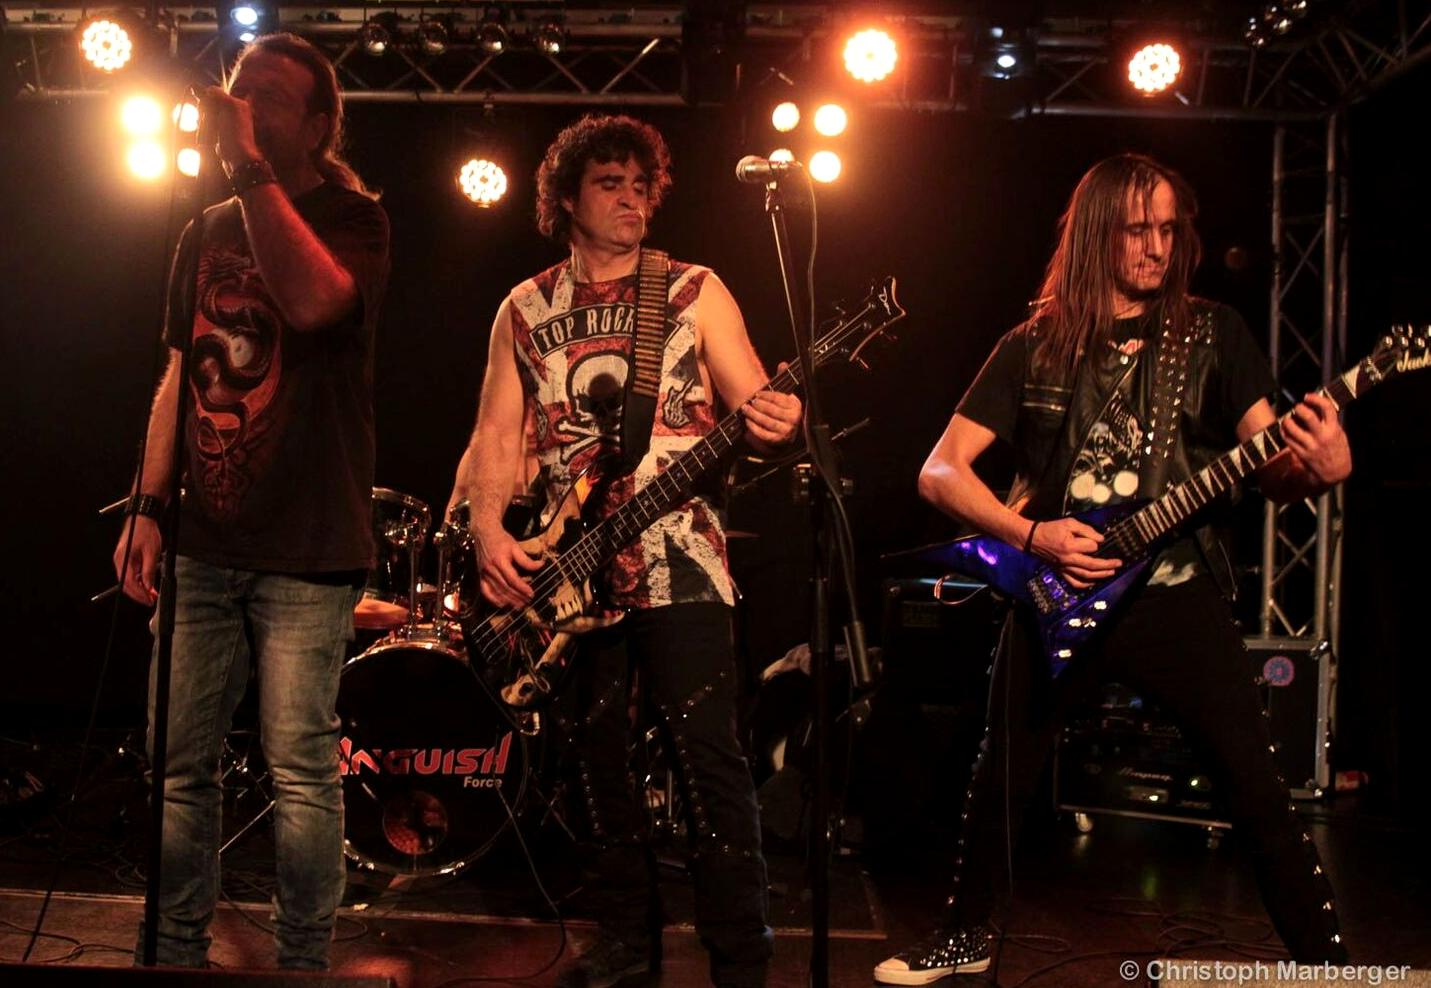 Anguish Force Livestage 68 - Raining Blood Night - Livestage Innsbruck - live